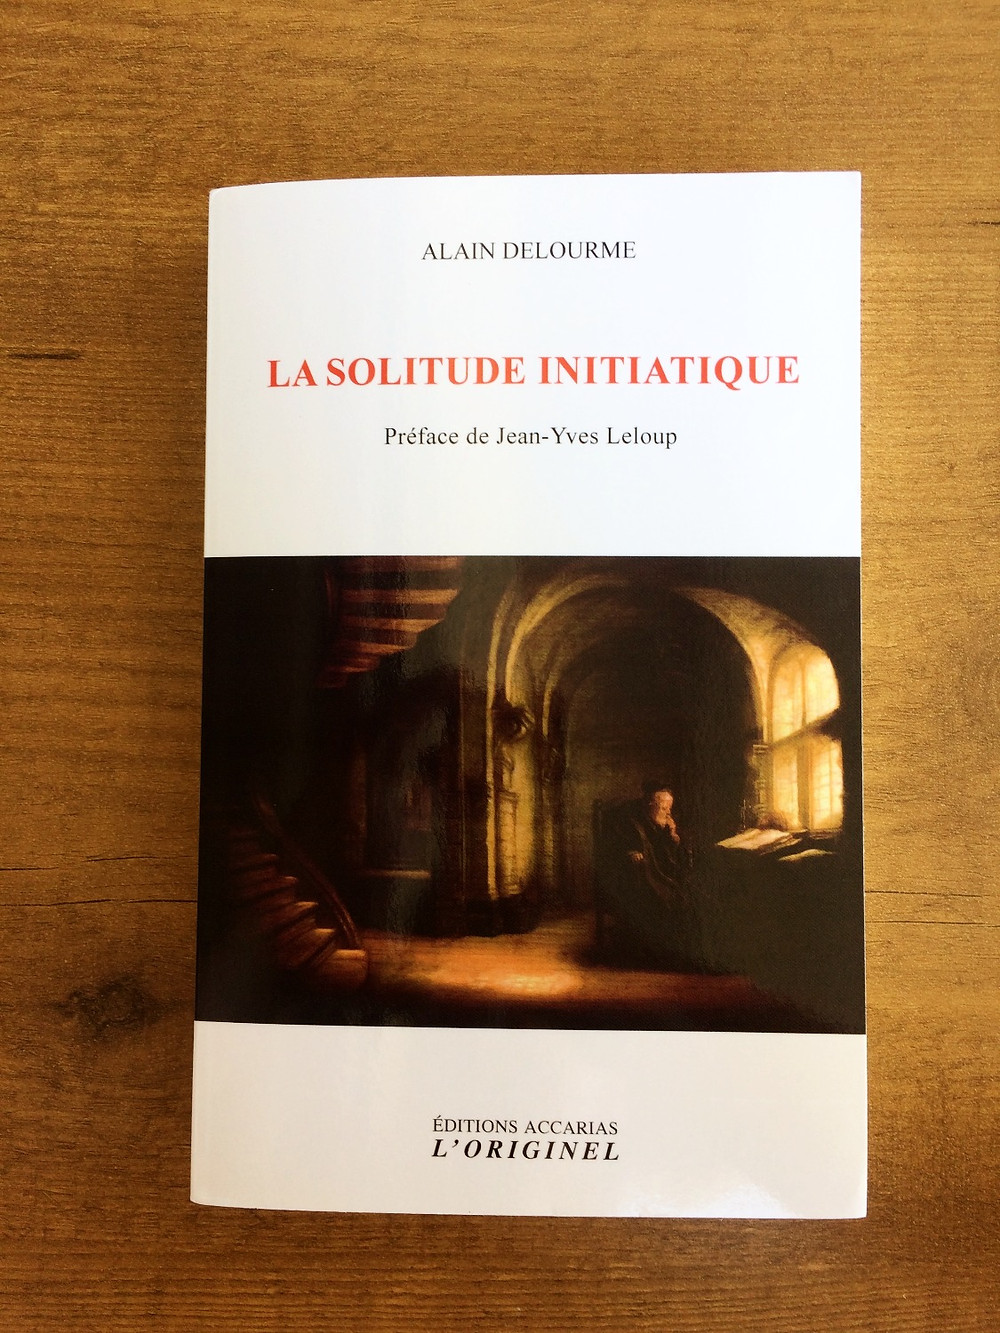 Photo du livre La solitude initiatique d'Alain Delourme (1)